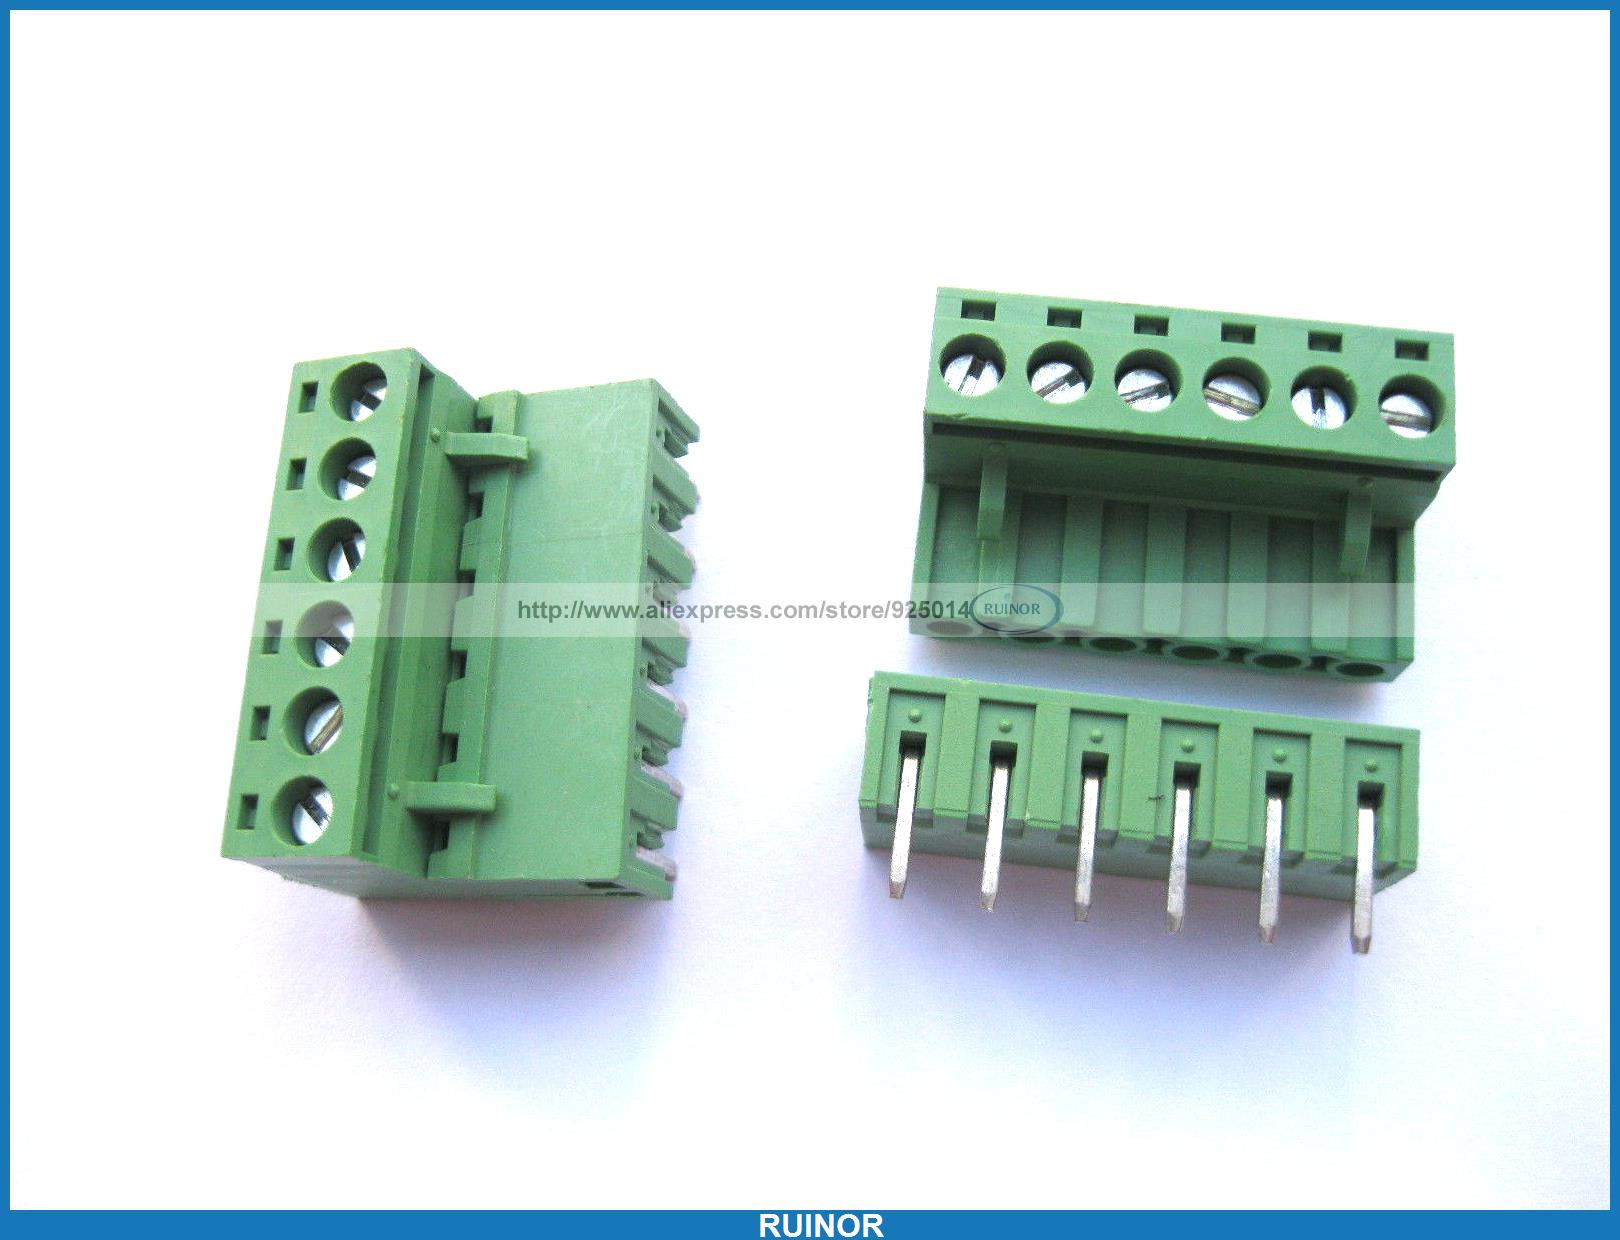 50 Pcs 5 08mm Angle 6 Pin Screw Terminal Block Connector Pluggable Type Green 100 pcs green 6 pin 5 08mm screw terminal block connector pluggable type